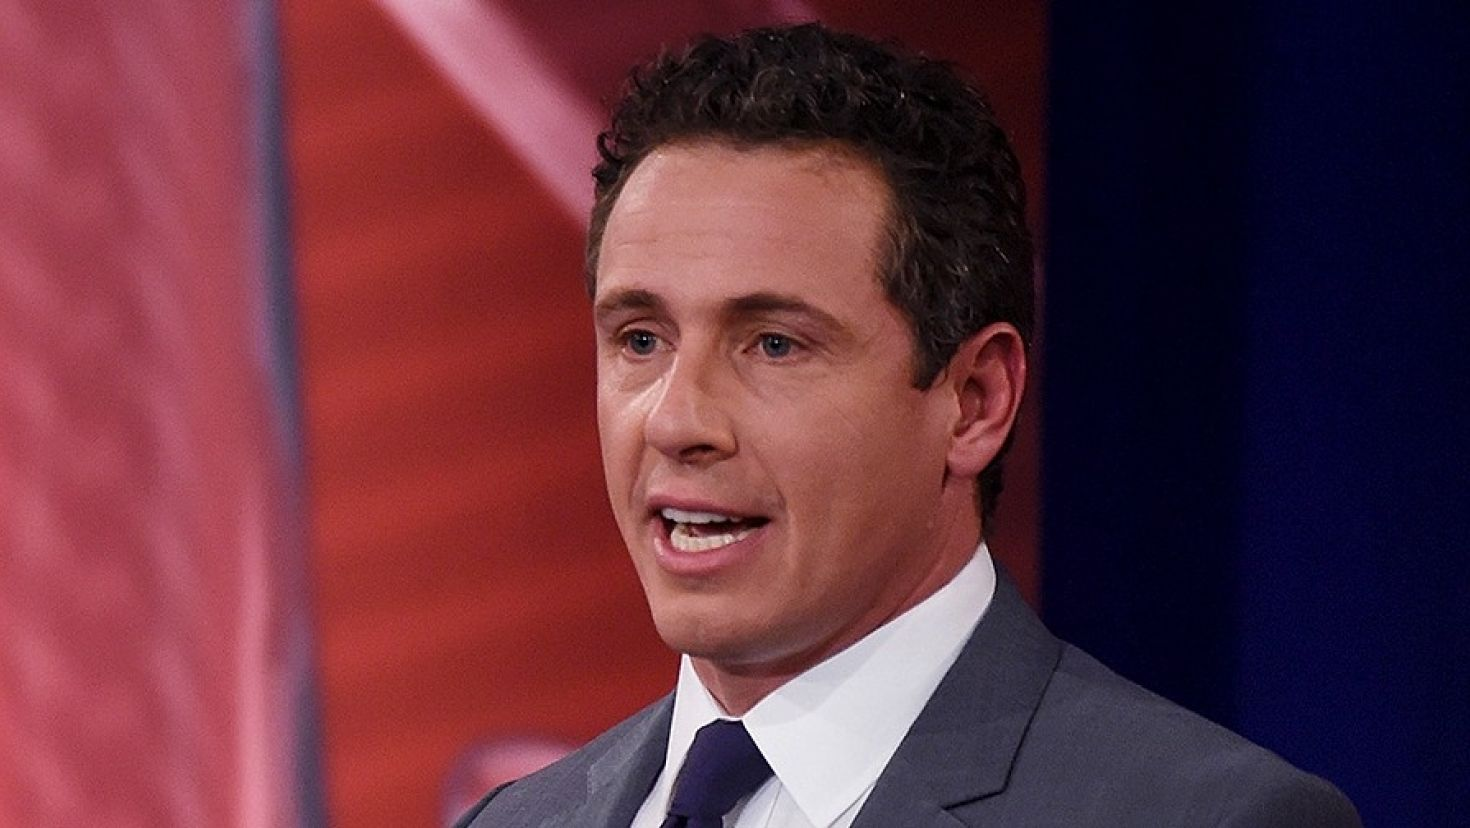 Embarrassment For Cnn As Chris Cuomo S New Show Trounced By Msnbc In Anti Trump Smackdown Chris Cuomo Cnn Anchors Steve King